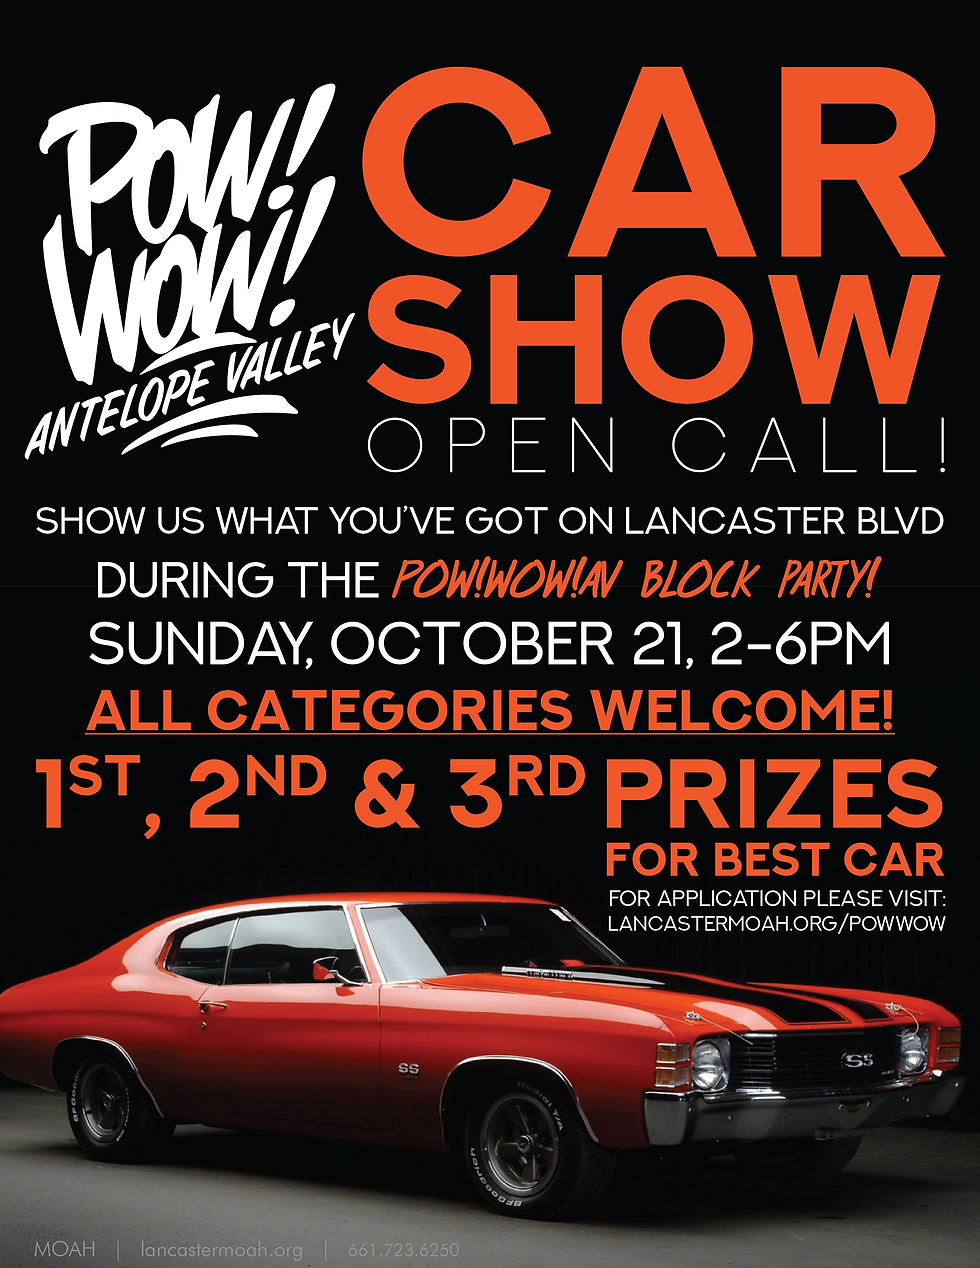 Car Show Open Call Flyer_Revised-01.png